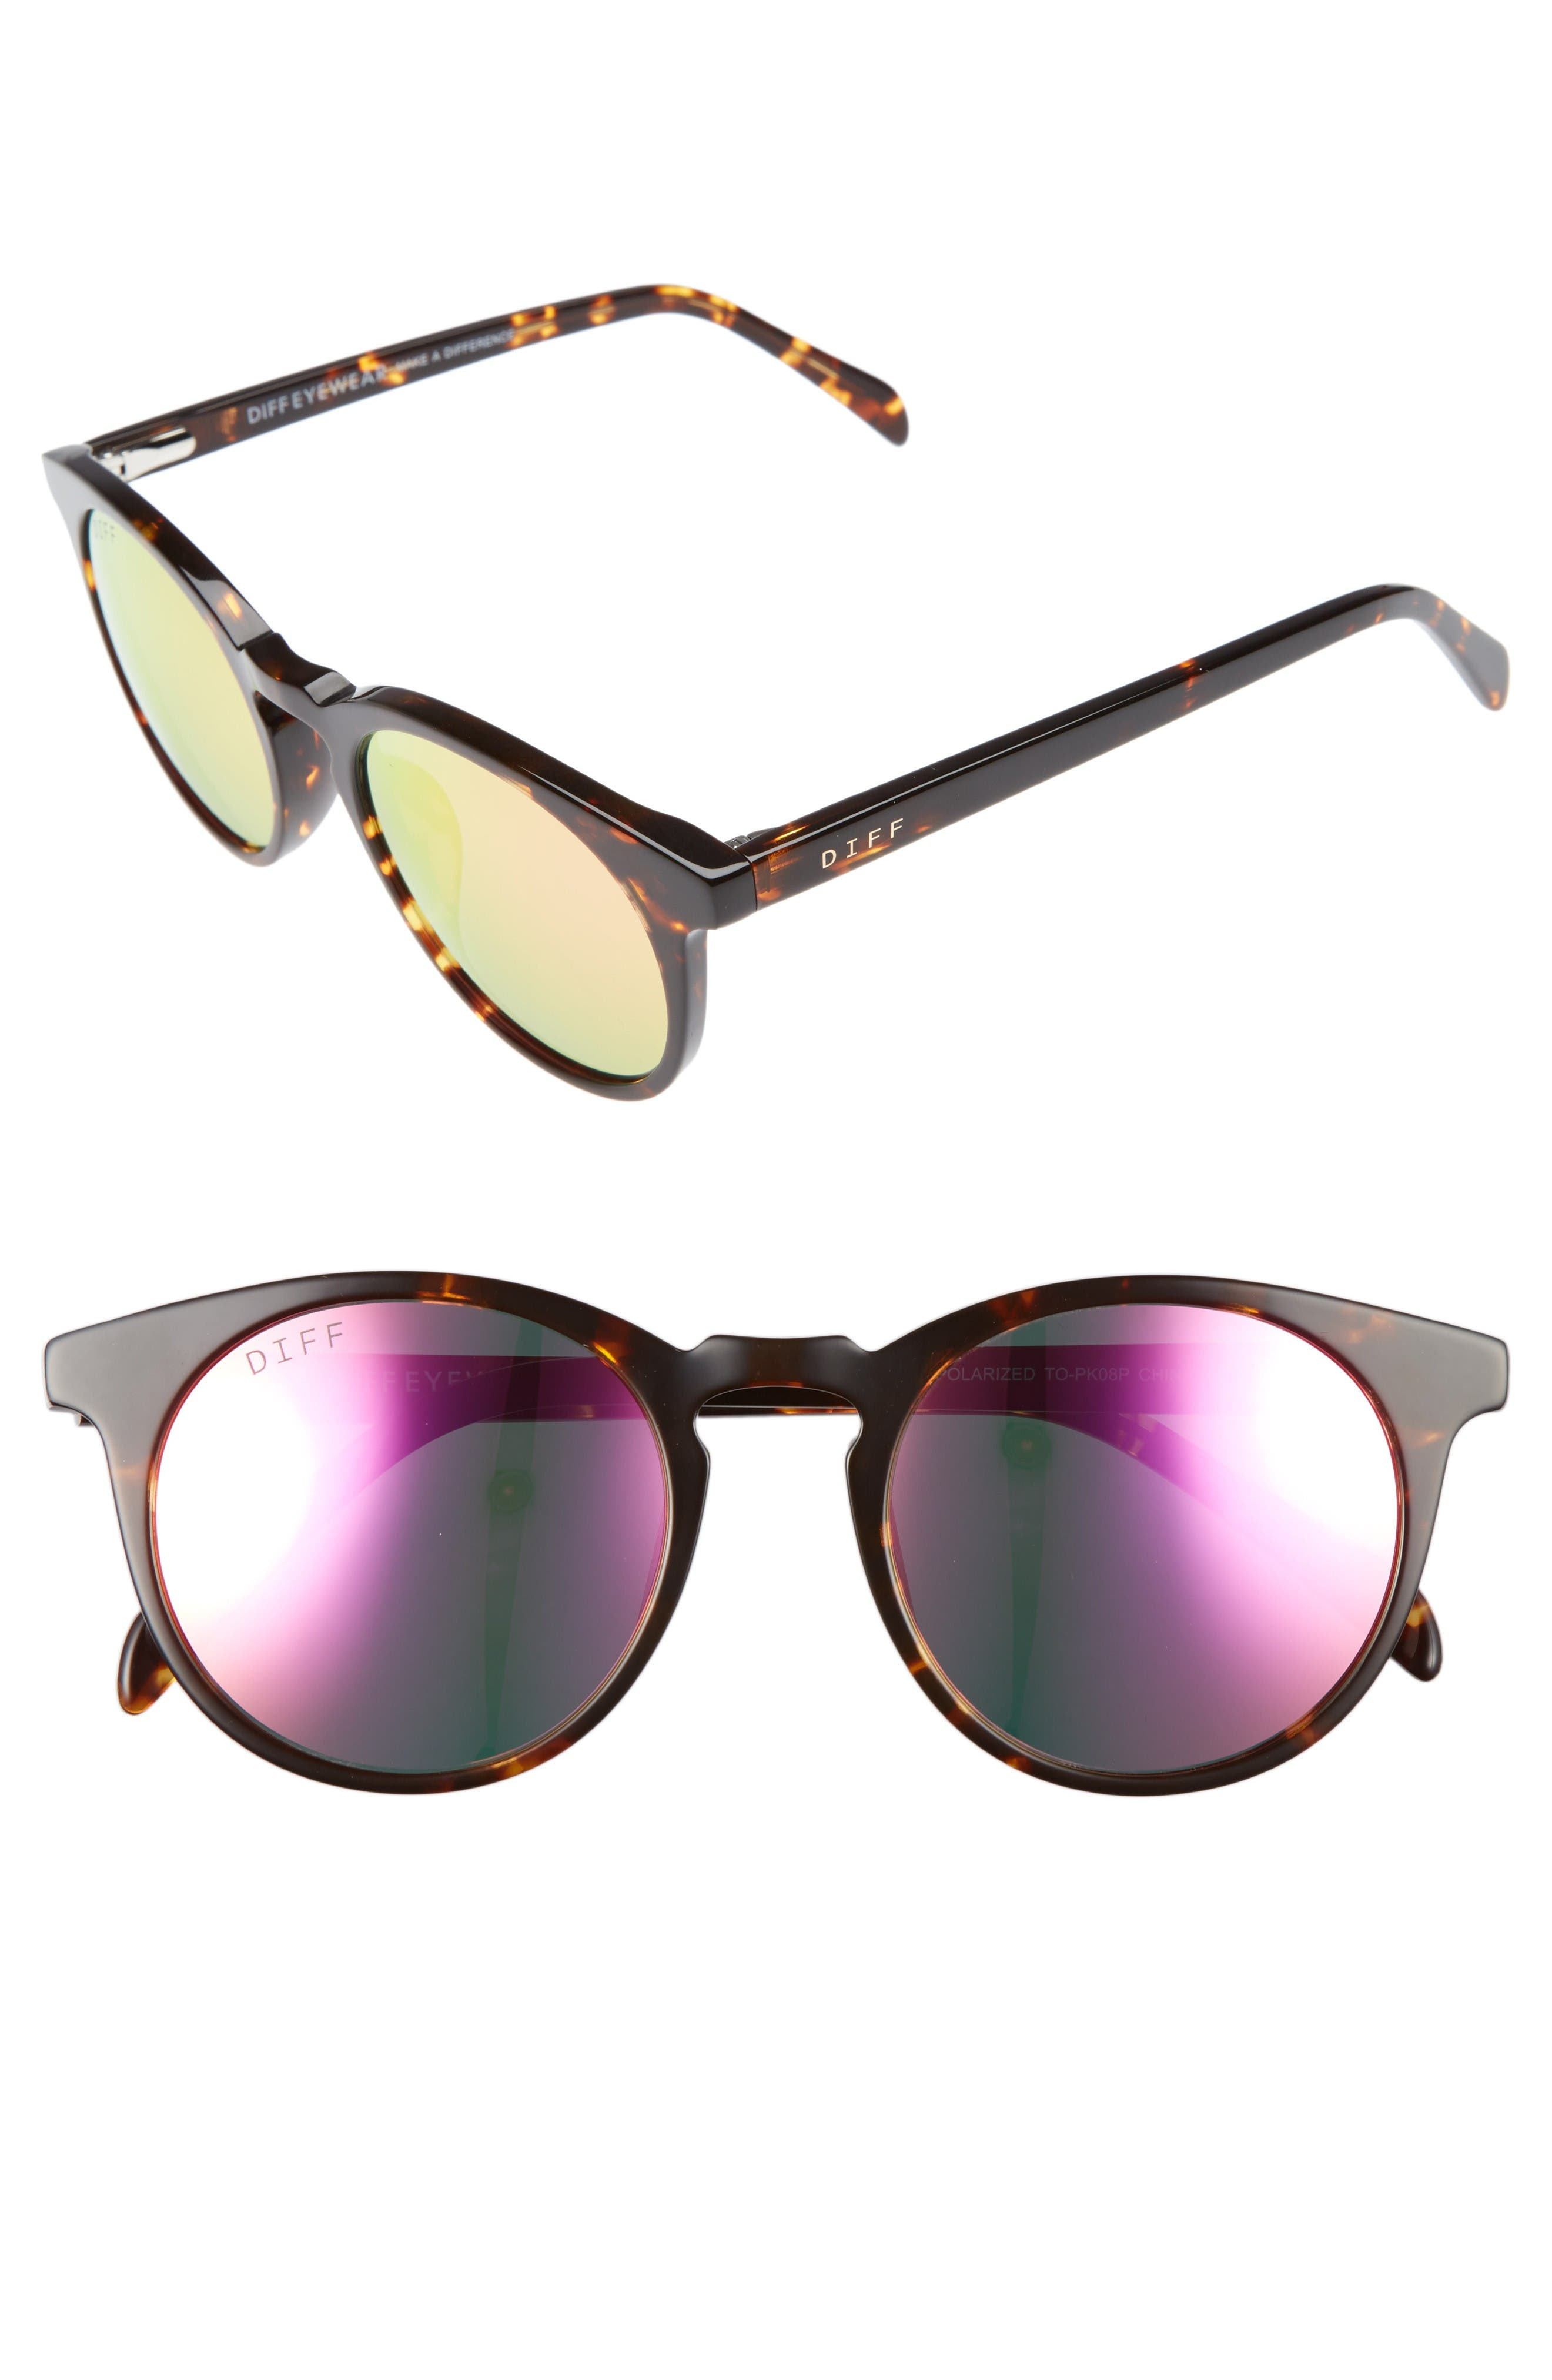 Charlie 48mm Mirrored Polarized Round Retro Sunglasses,                             Main thumbnail 1, color,                             Tortoise/ Pink